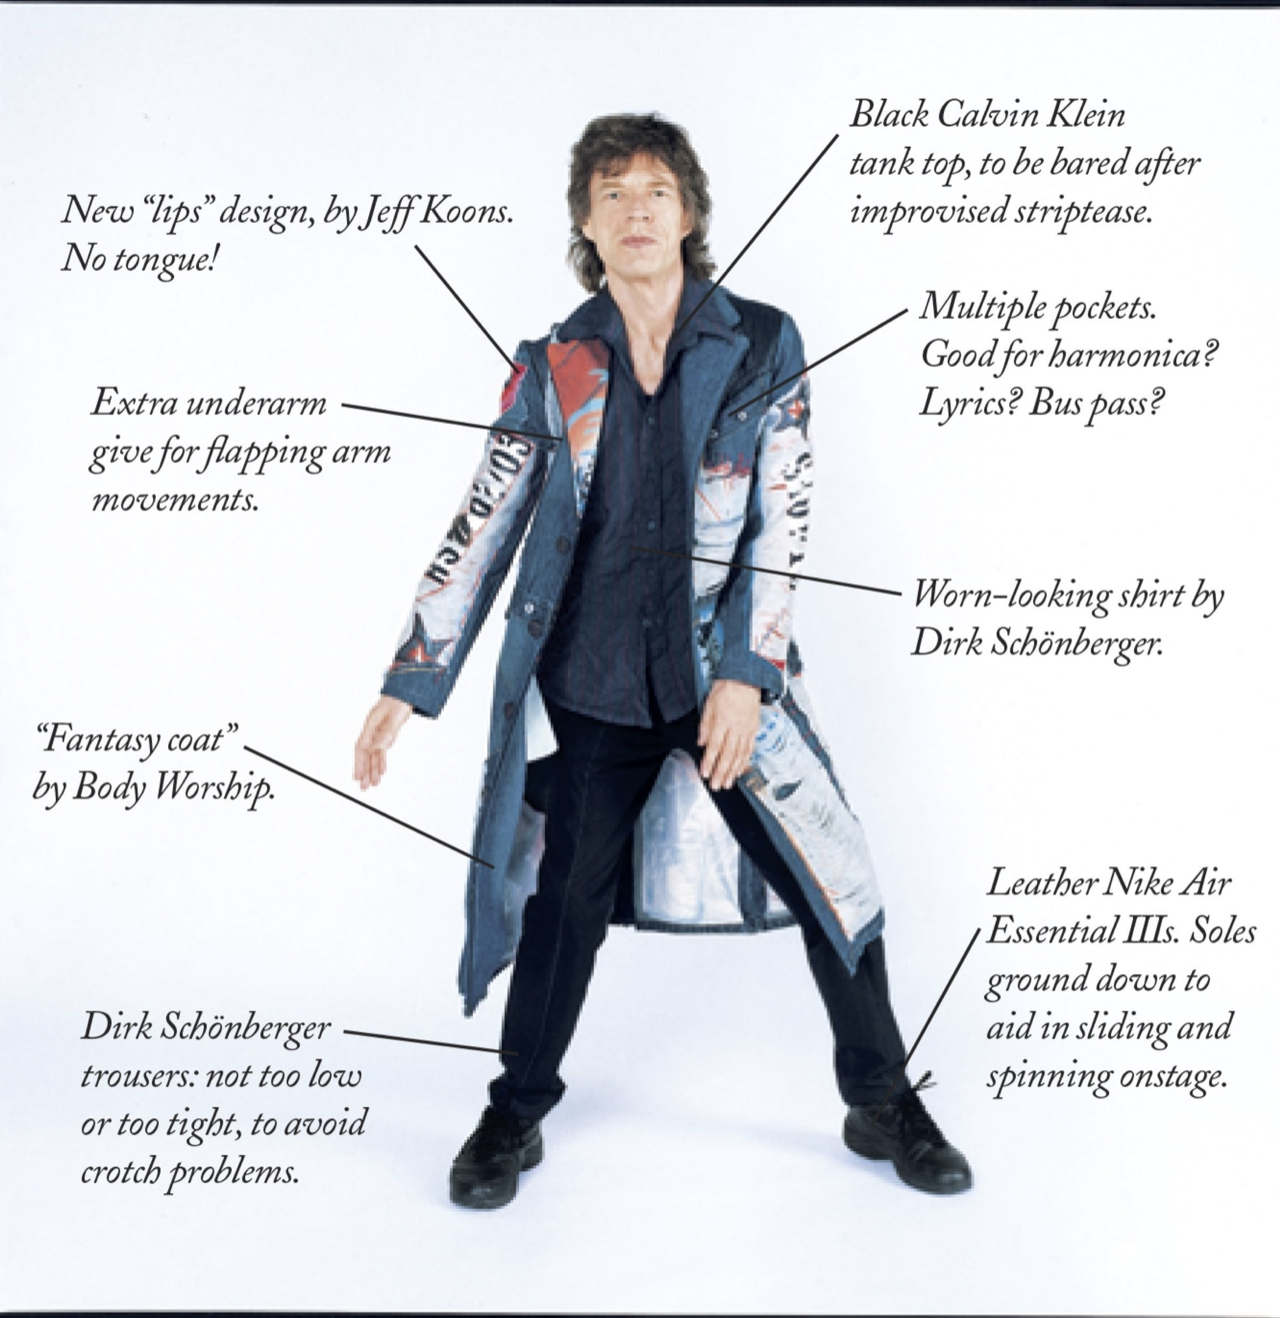 New Yorker - Mick Jagger Performanceread more